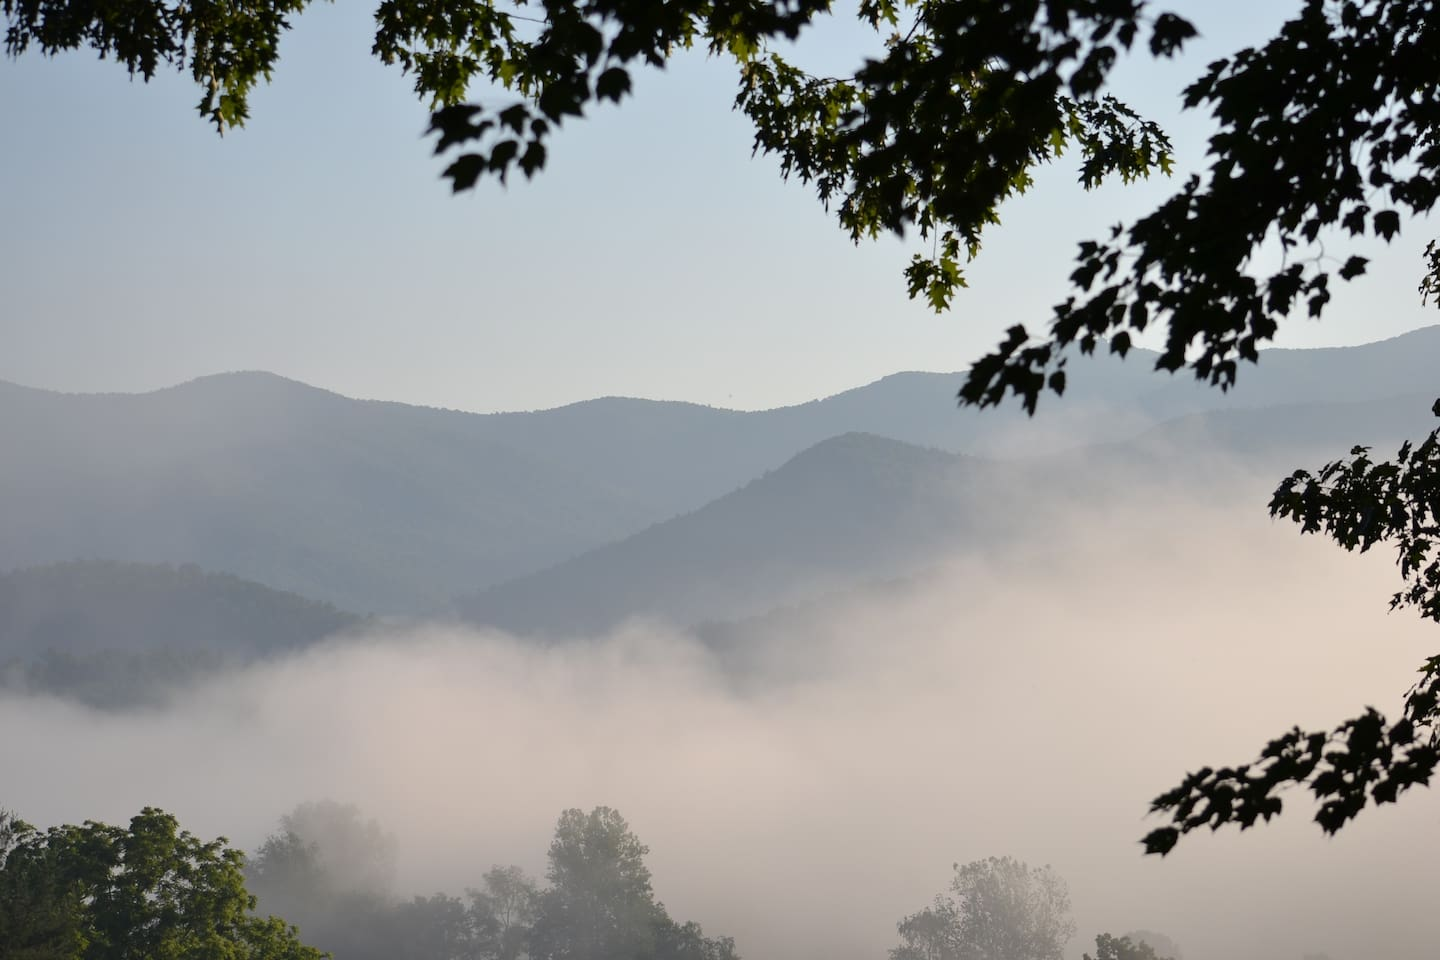 A view from our deck as fog rolls off the mountains